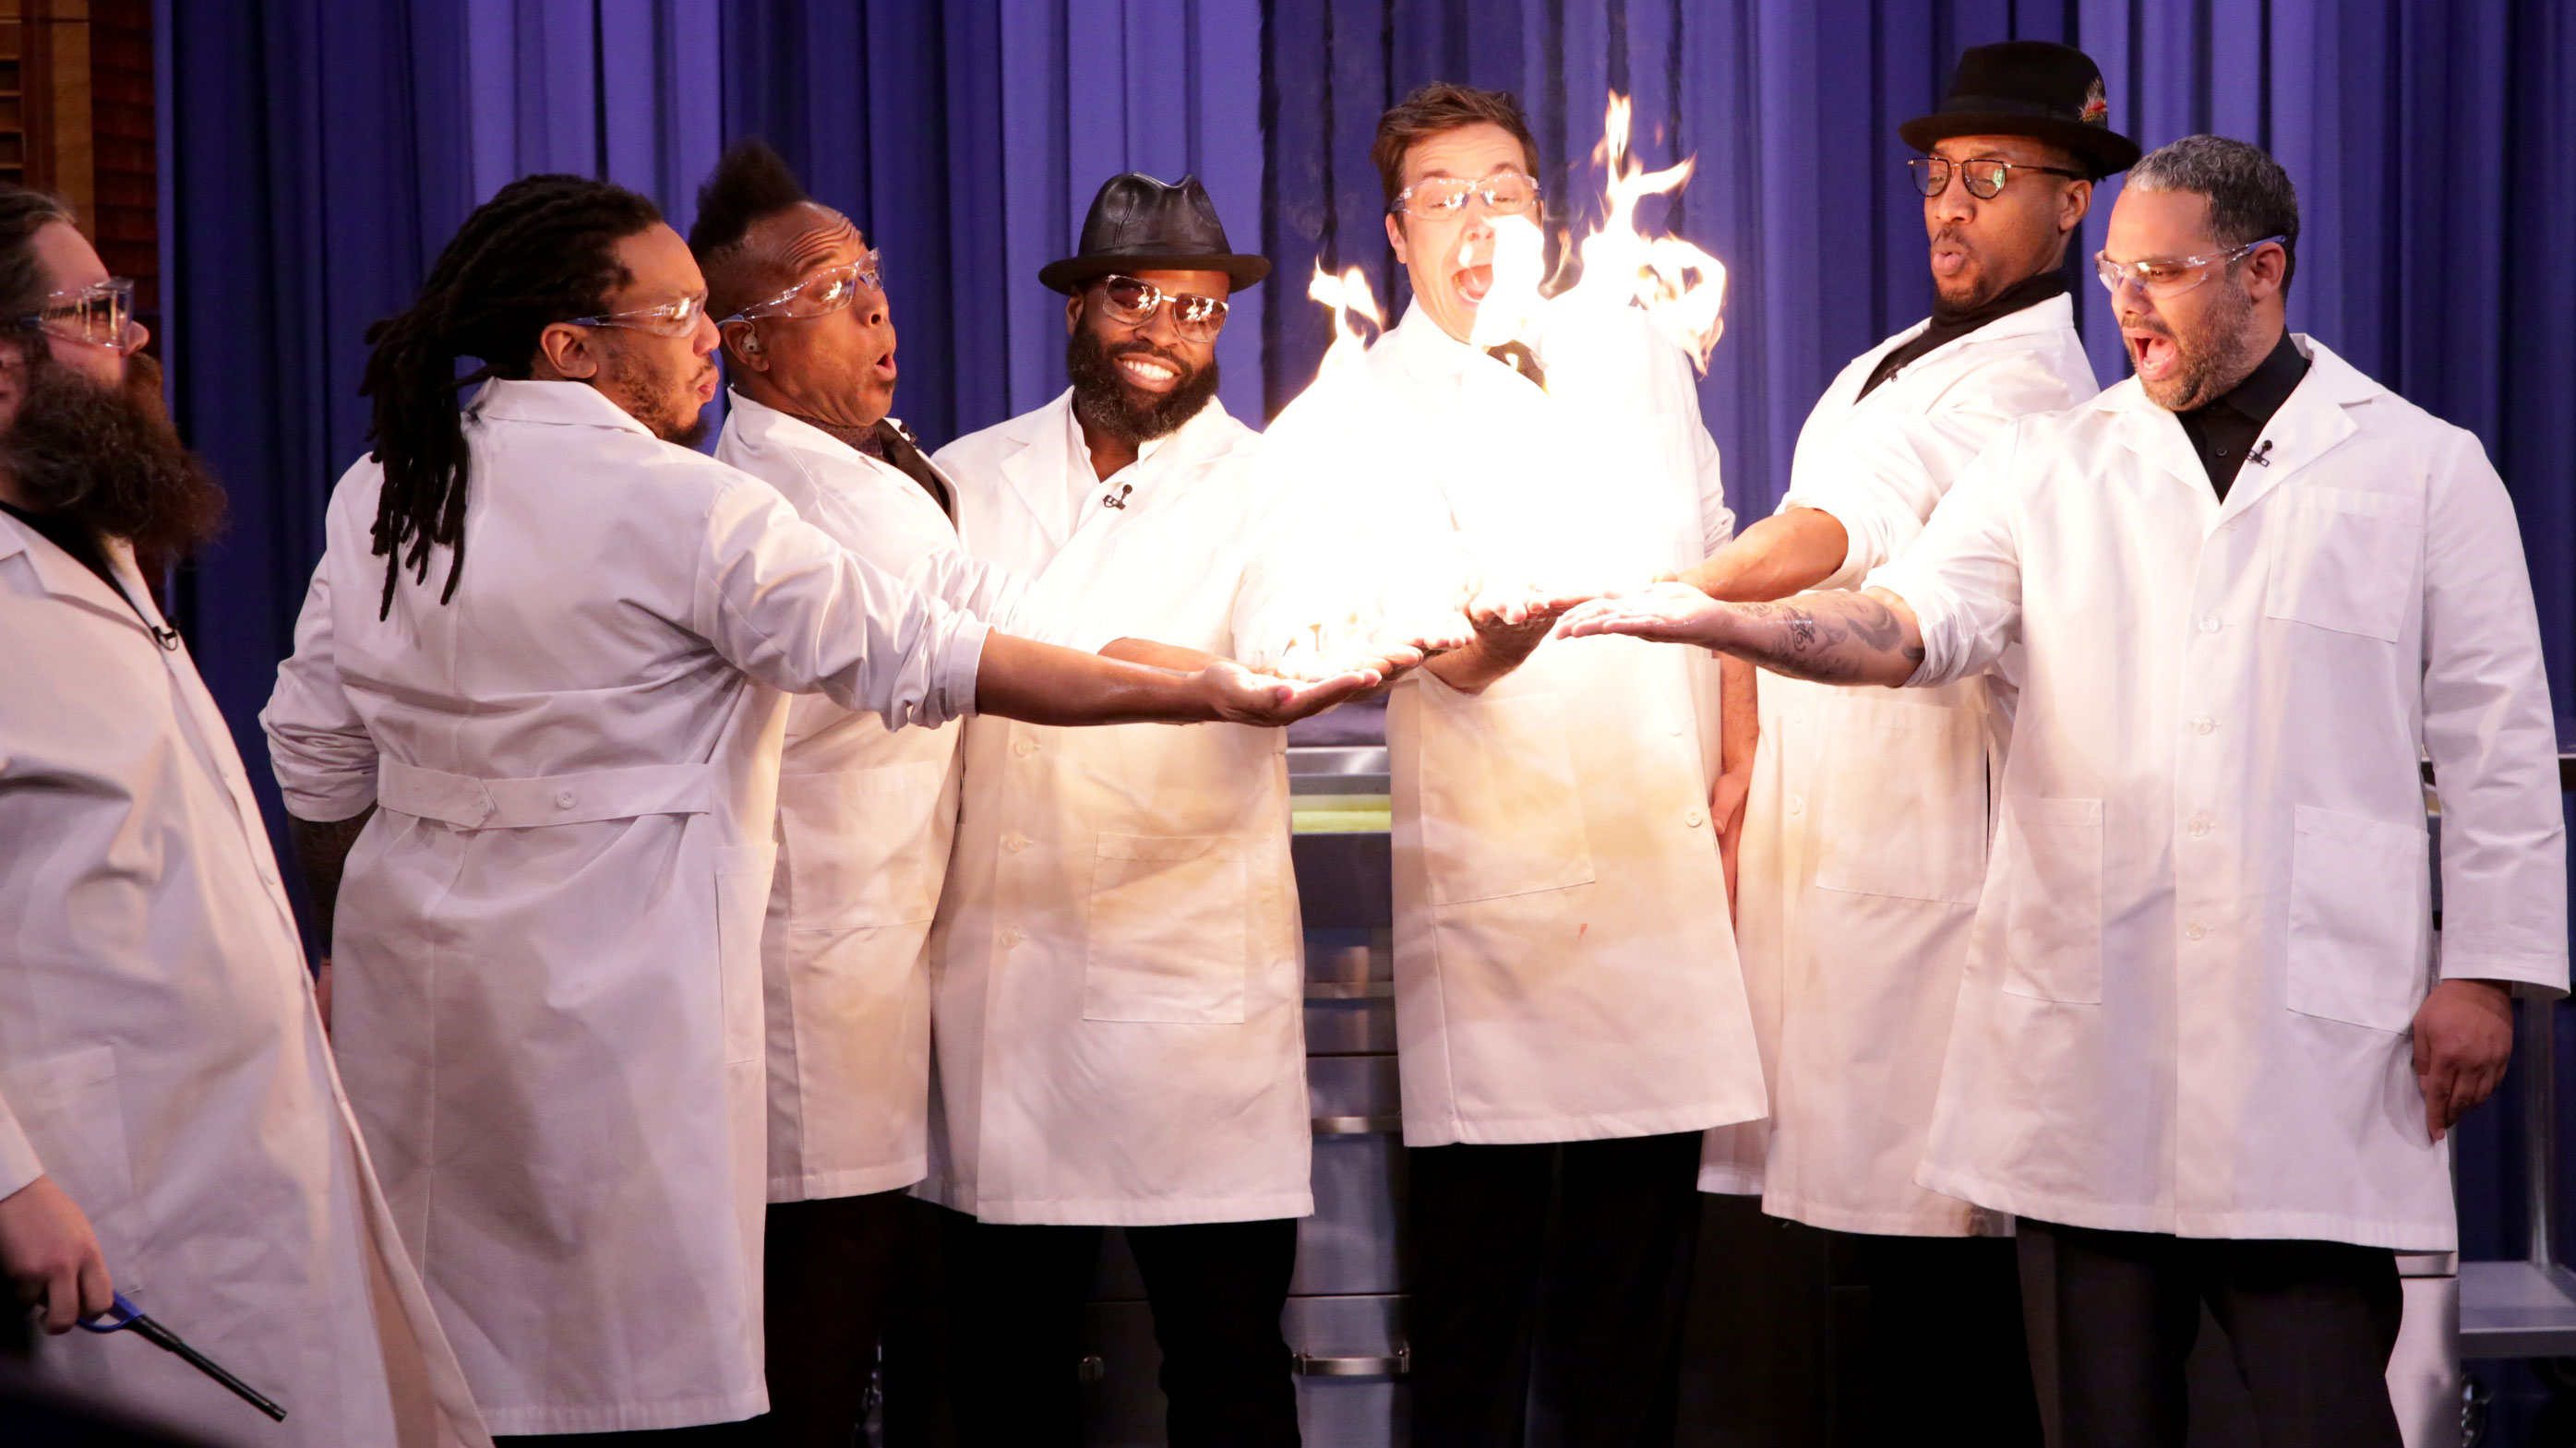 Science Expert Kevin Delaney Lights Jimmy Fallon and The Roots' Hands on Fire